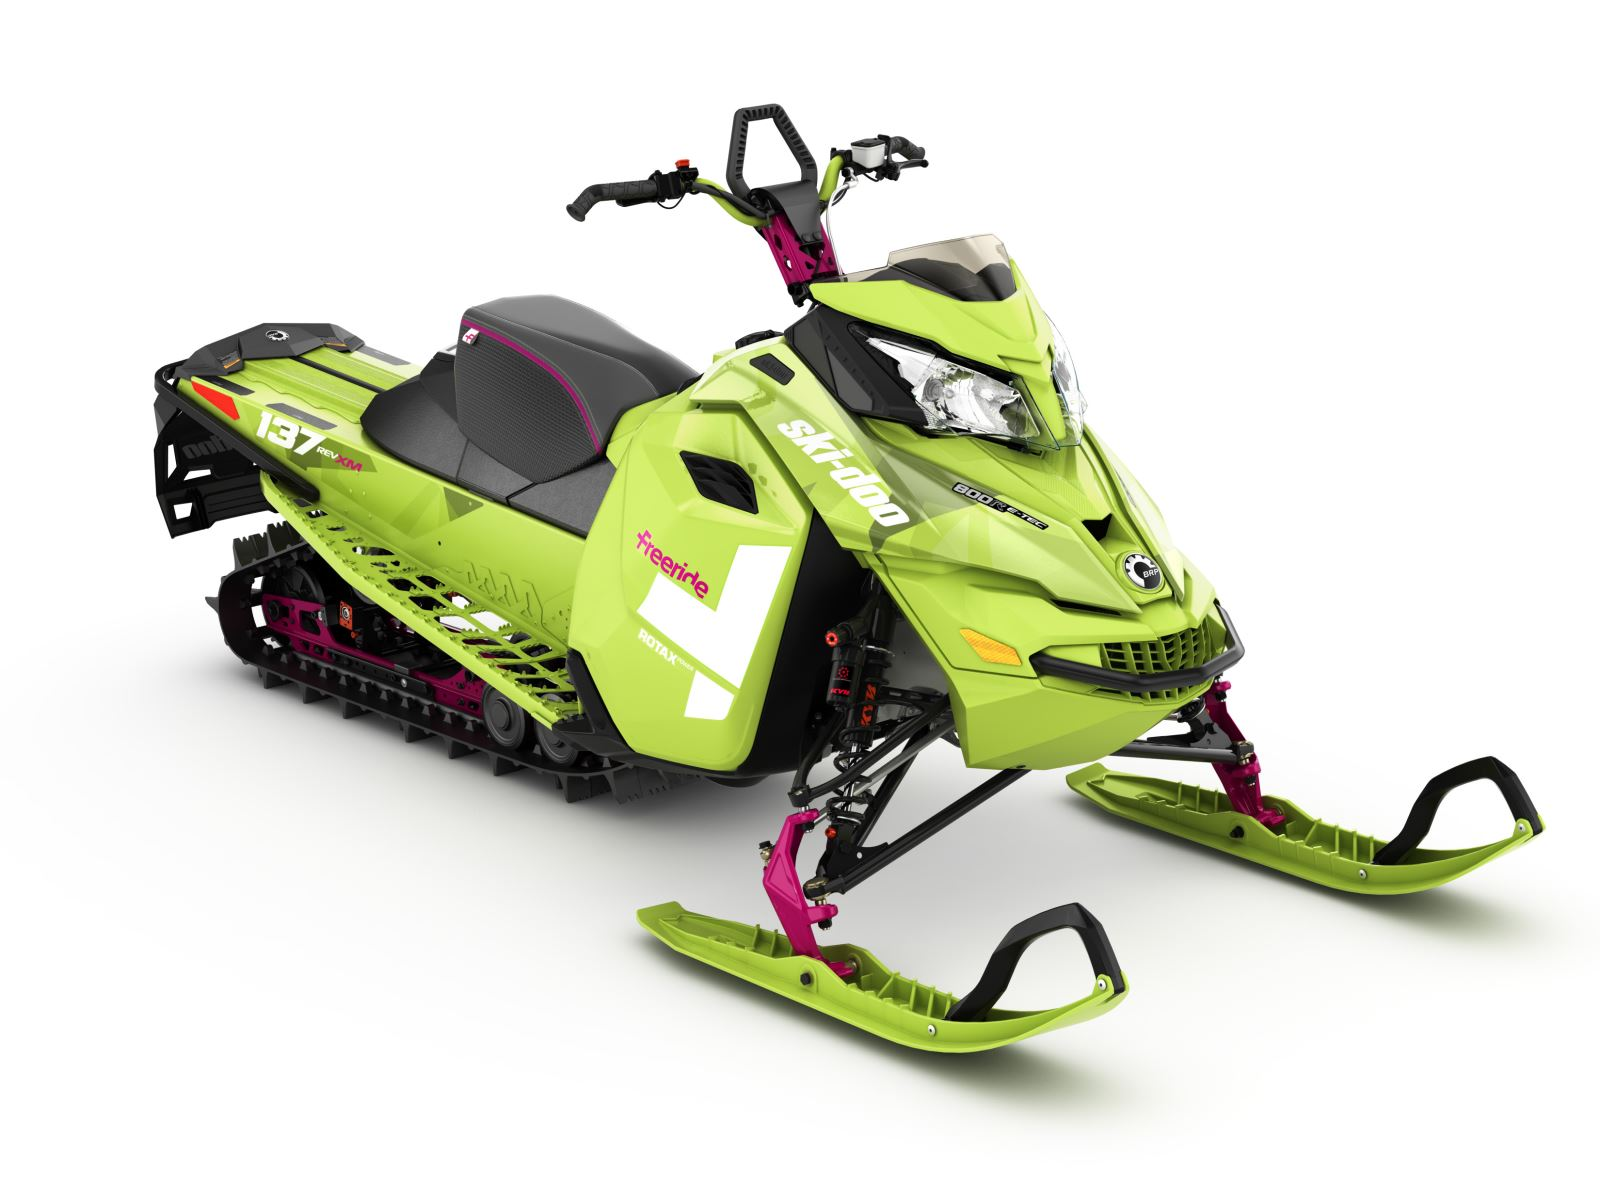 ski doo neu as - photo #28